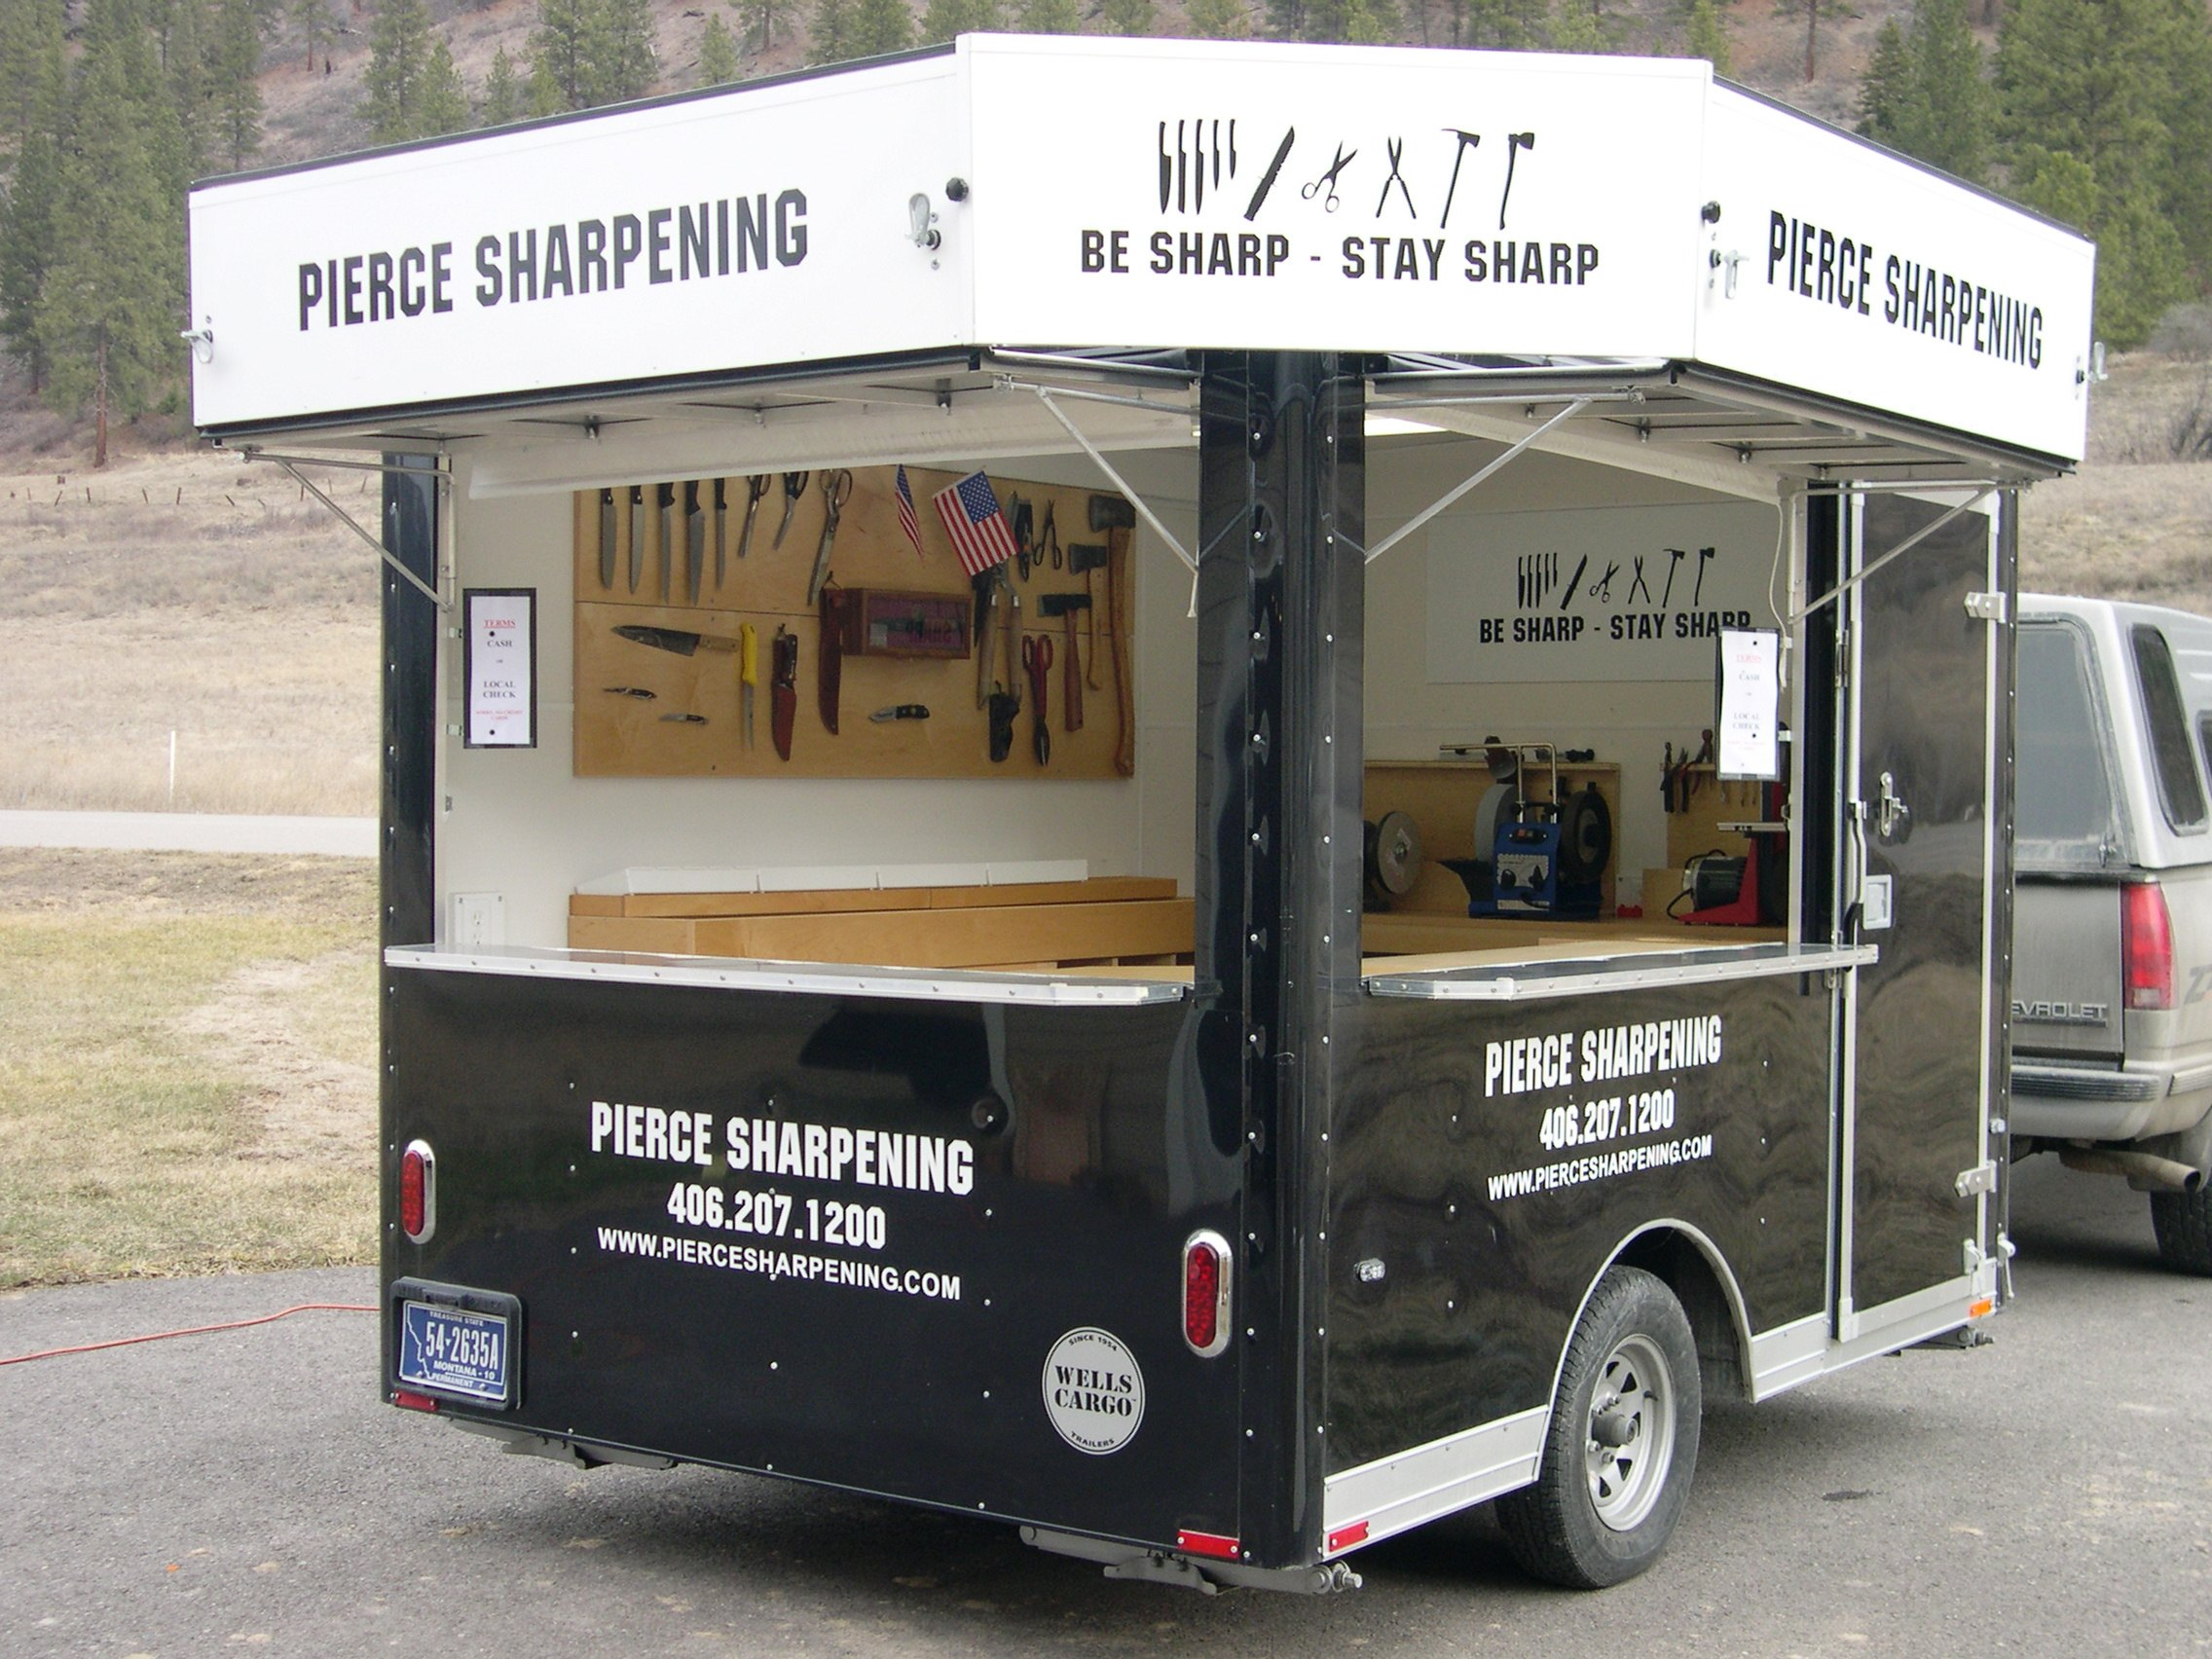 Inside our mobile sharpening shop - Photo B